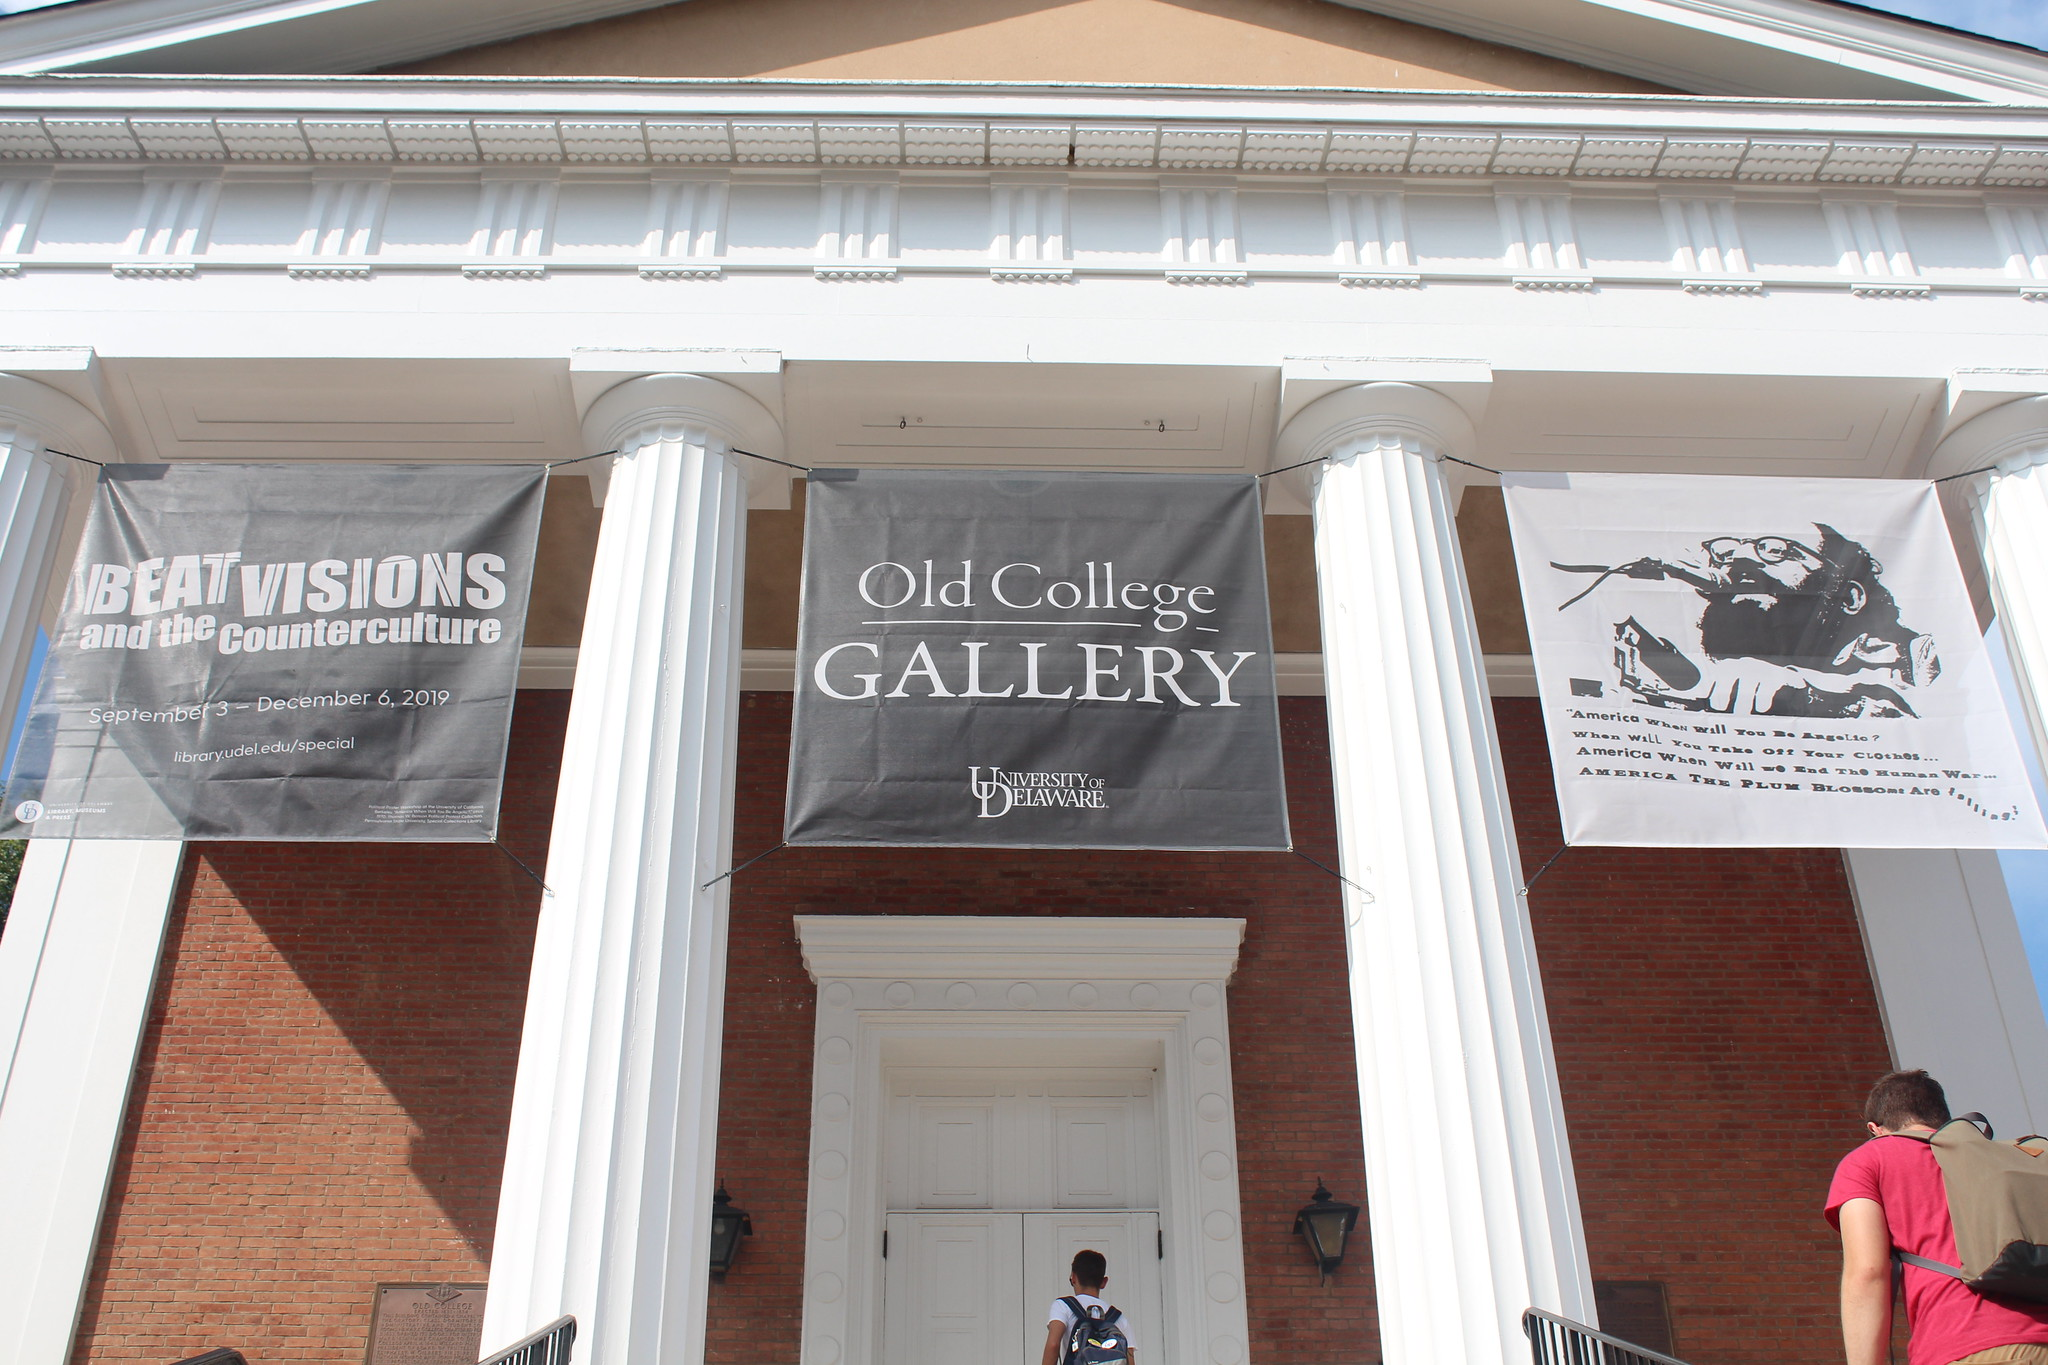 Artistry and activism: new exhibits on display at Old College